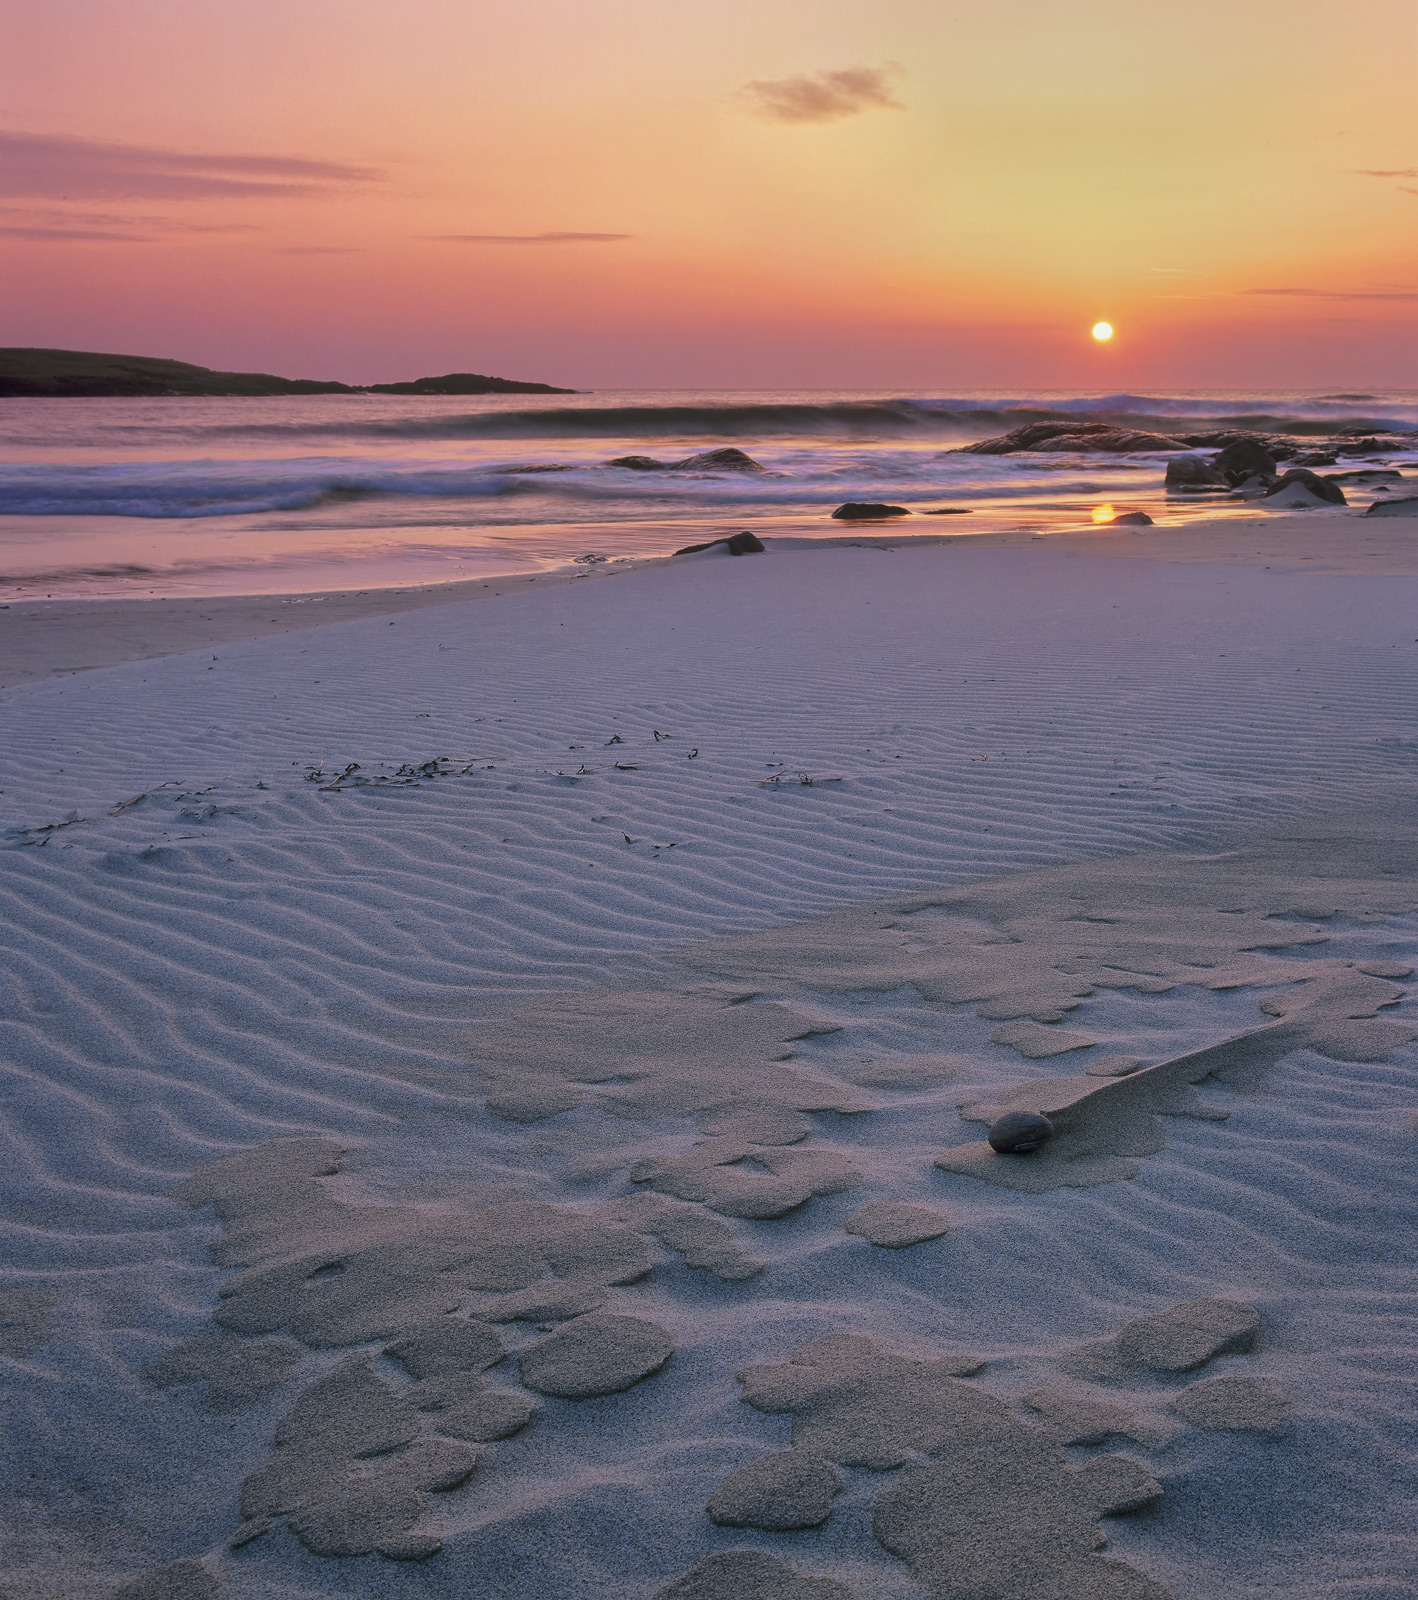 There were a lot of sand sculpted patterns on Hosta beach on this particular evening and with a satsuma sunset starting to develop...